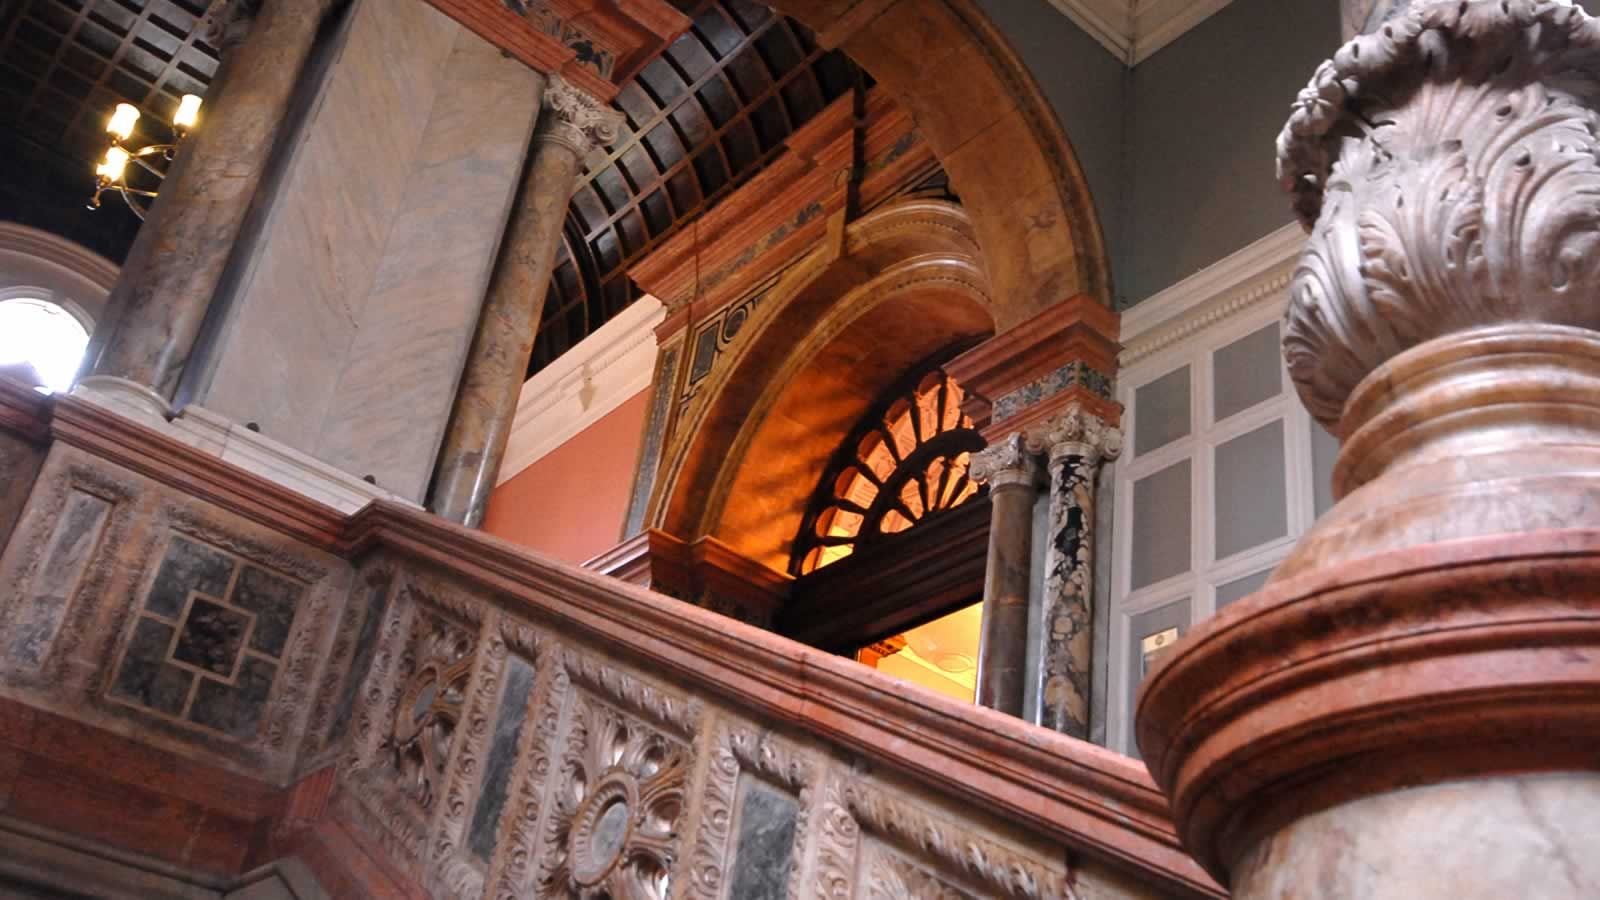 Ornated staircase within the Examination Schools, Oxford